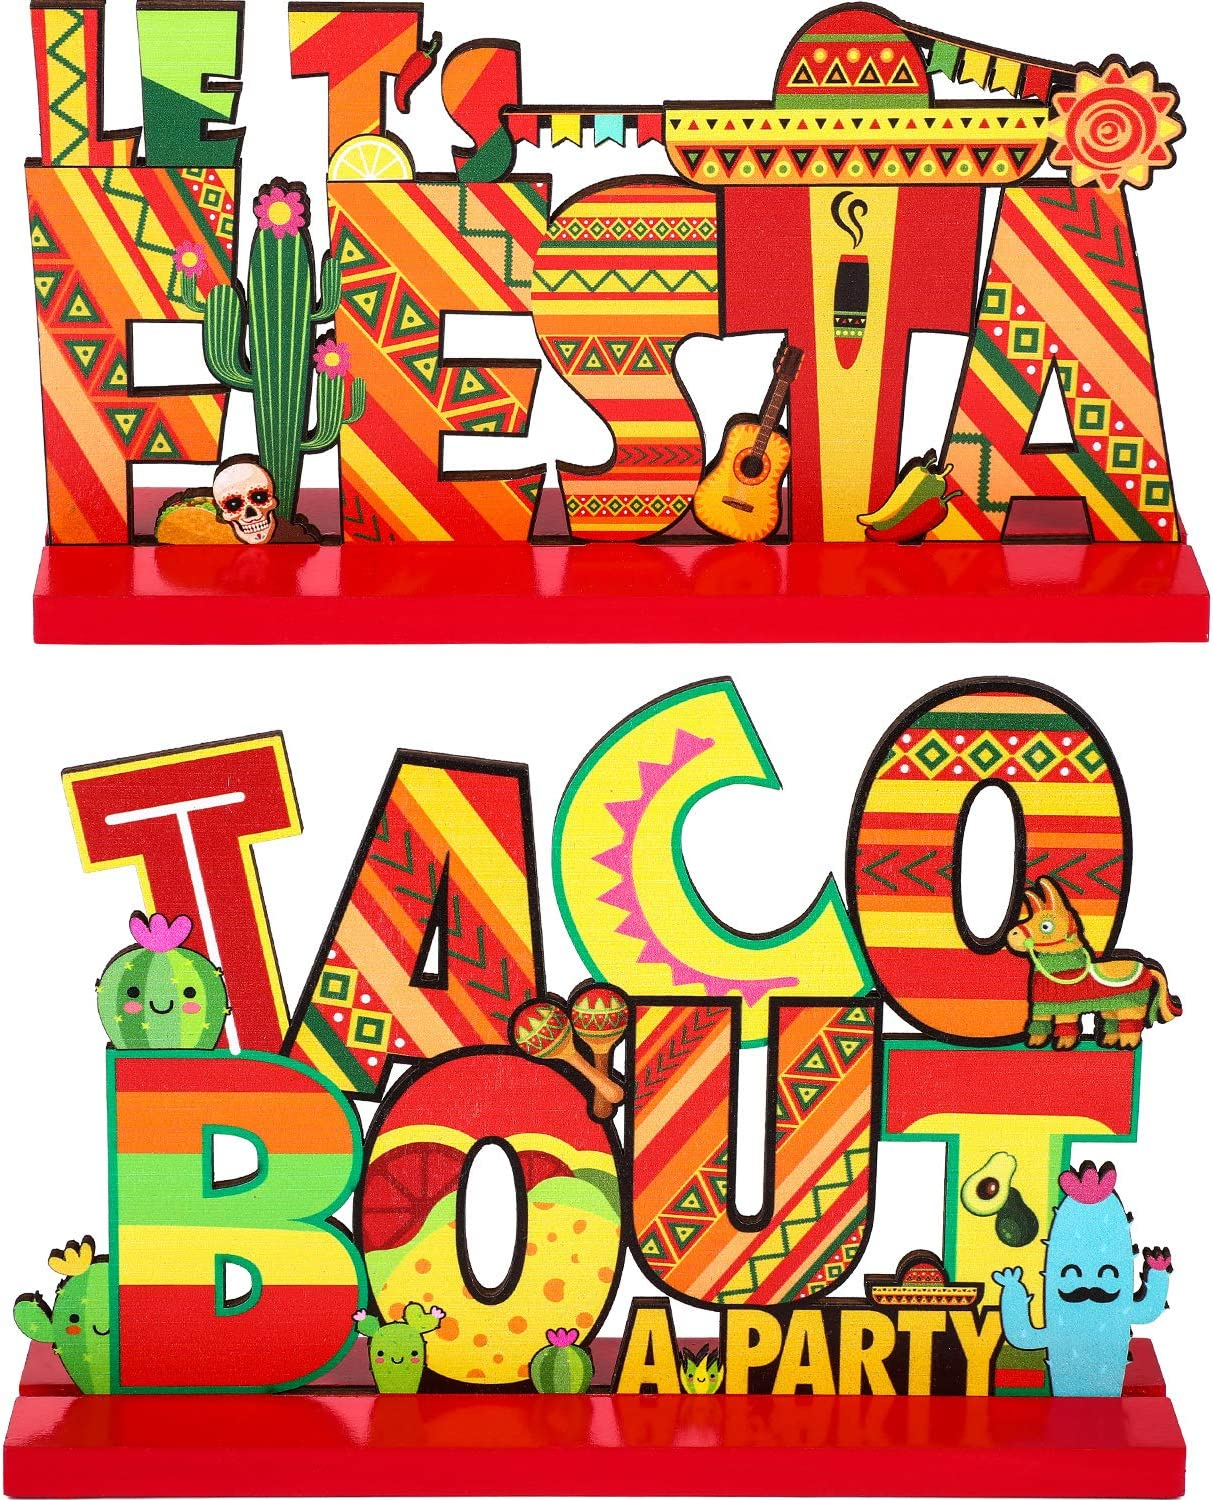 Blulu Fiesta Party Decoration Mexican Fiesta Table Signs Taco Bout a Party Wooden Table Centerpiece for Fiesta Mexican Cinco de Mayo Birthday Party Decor, 7.87 x 4.72 Inch, 2 Pcs